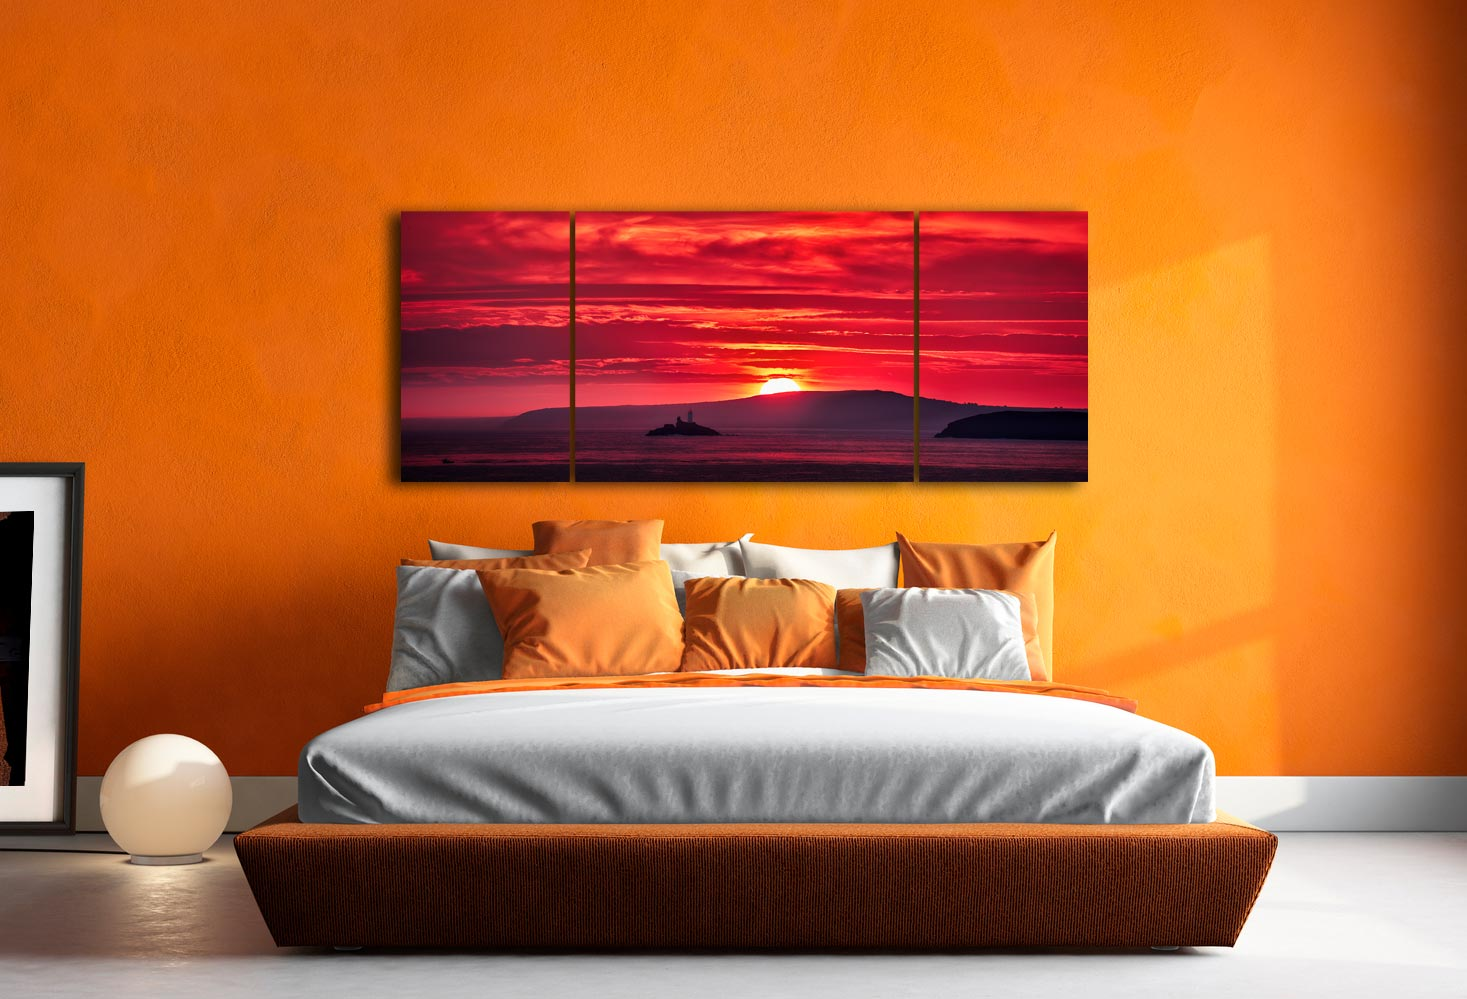 Red Sky in Morning - 3 Panel Wide Mid Canvas on Wall